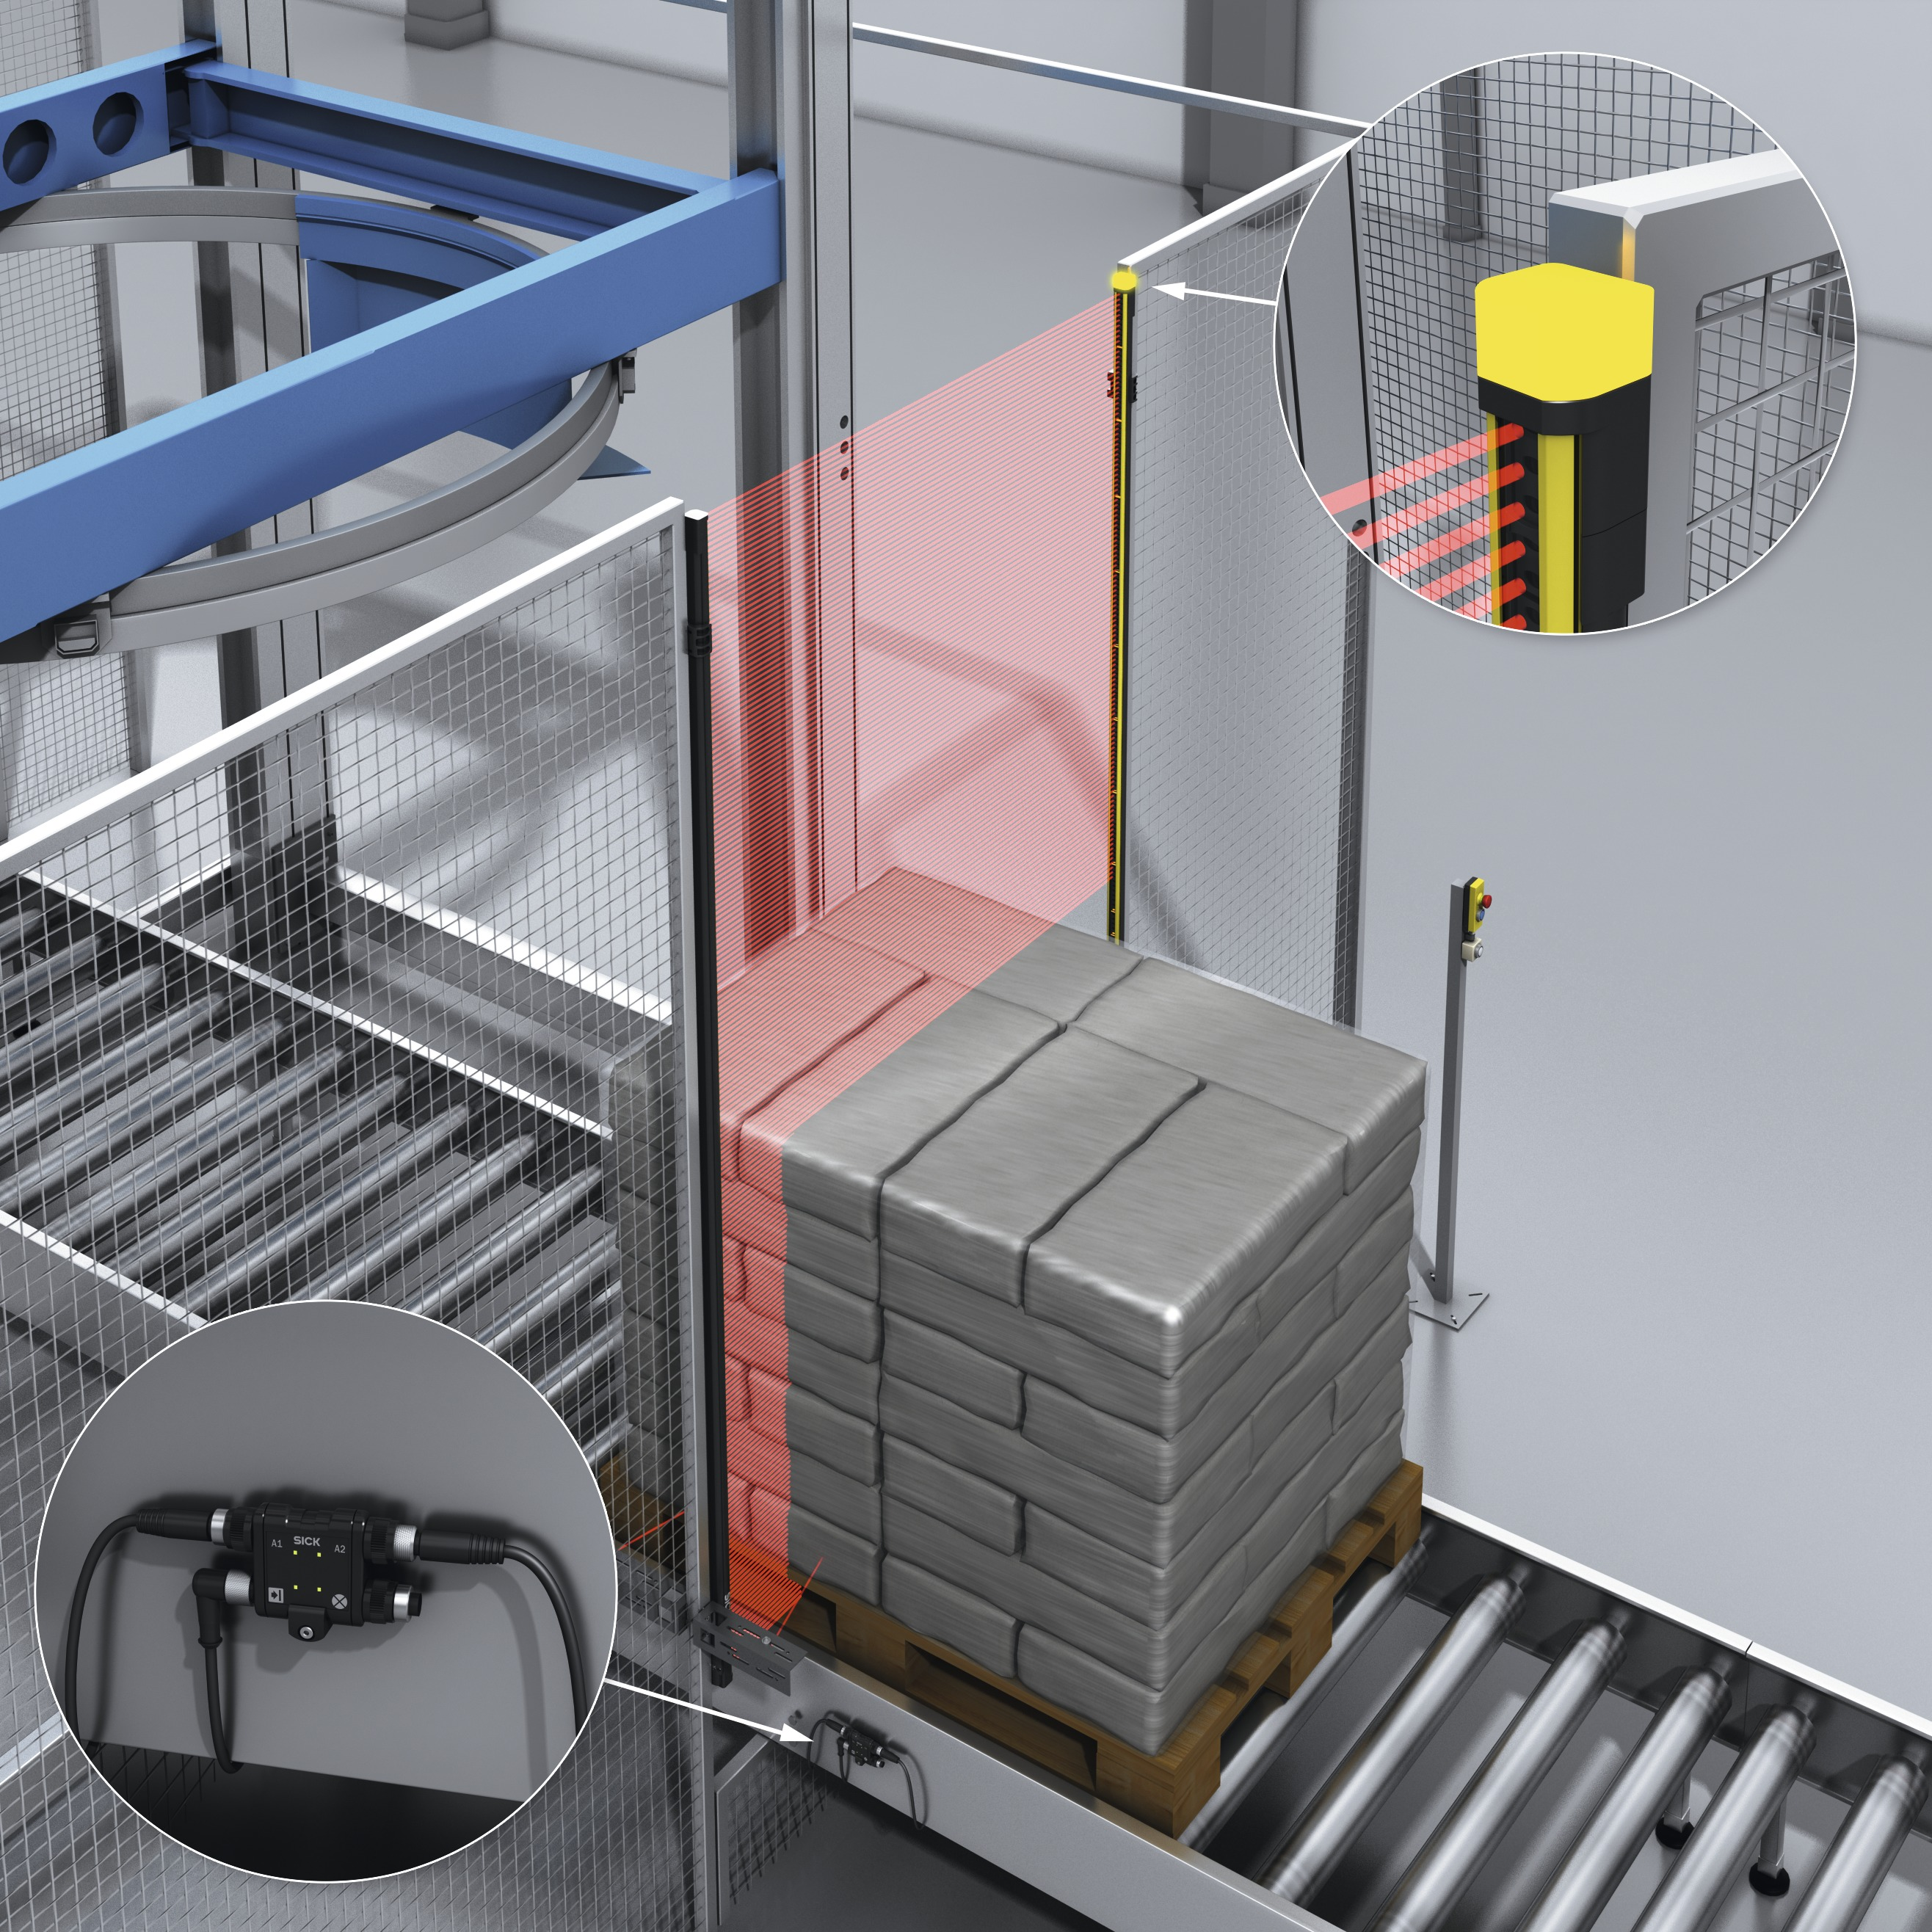 safety solutions for packaging industry, Safety and Automation Produce Results for the Packaging Industry